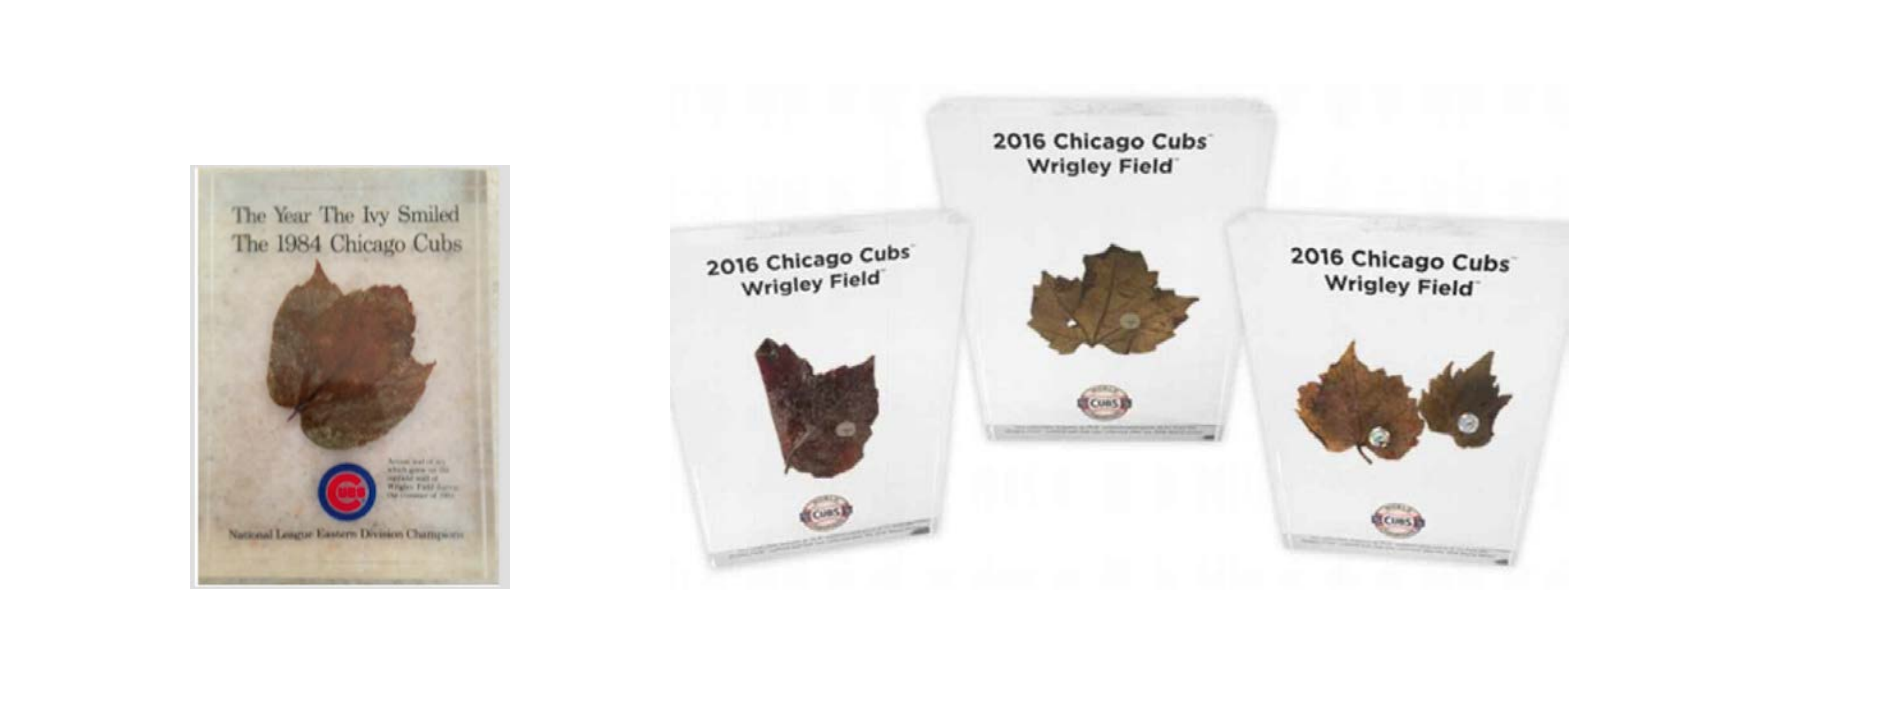 "The ""Fox Commemorative"" (far left) compared to the commemorative items the Cubs made for sale after the team won the 2016 World Series."